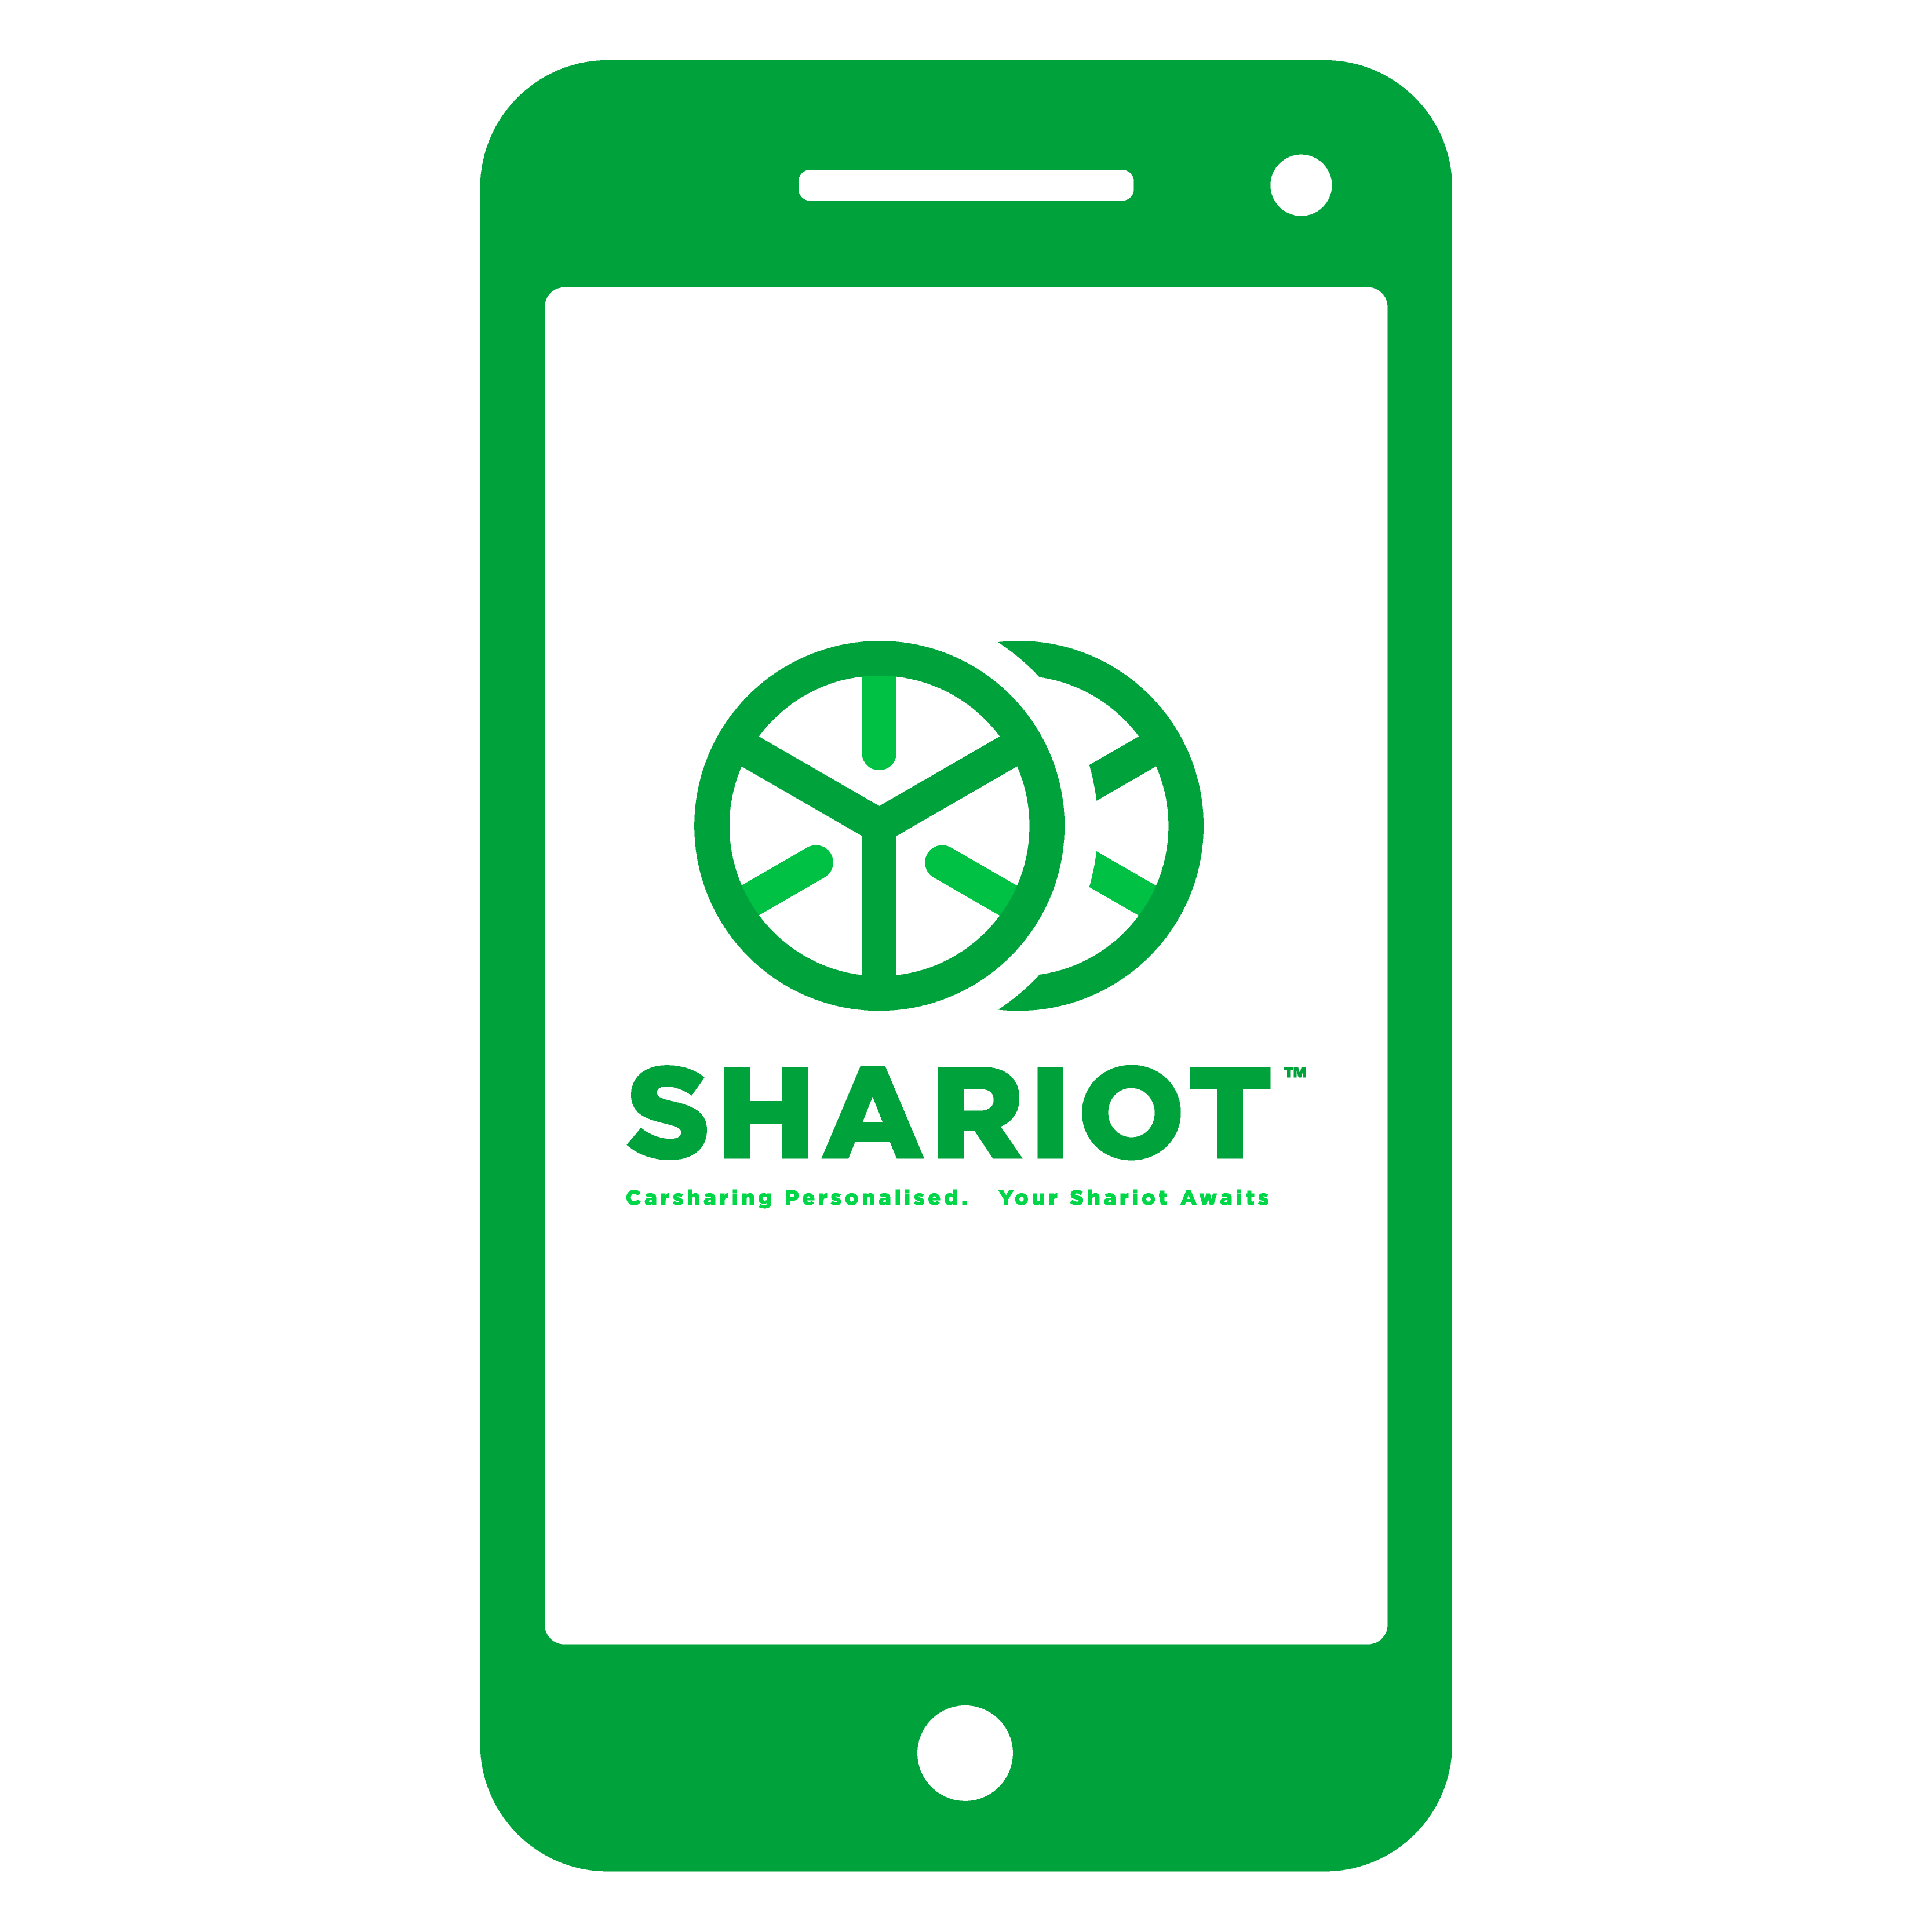 Shariot - Items - Home - Step 1